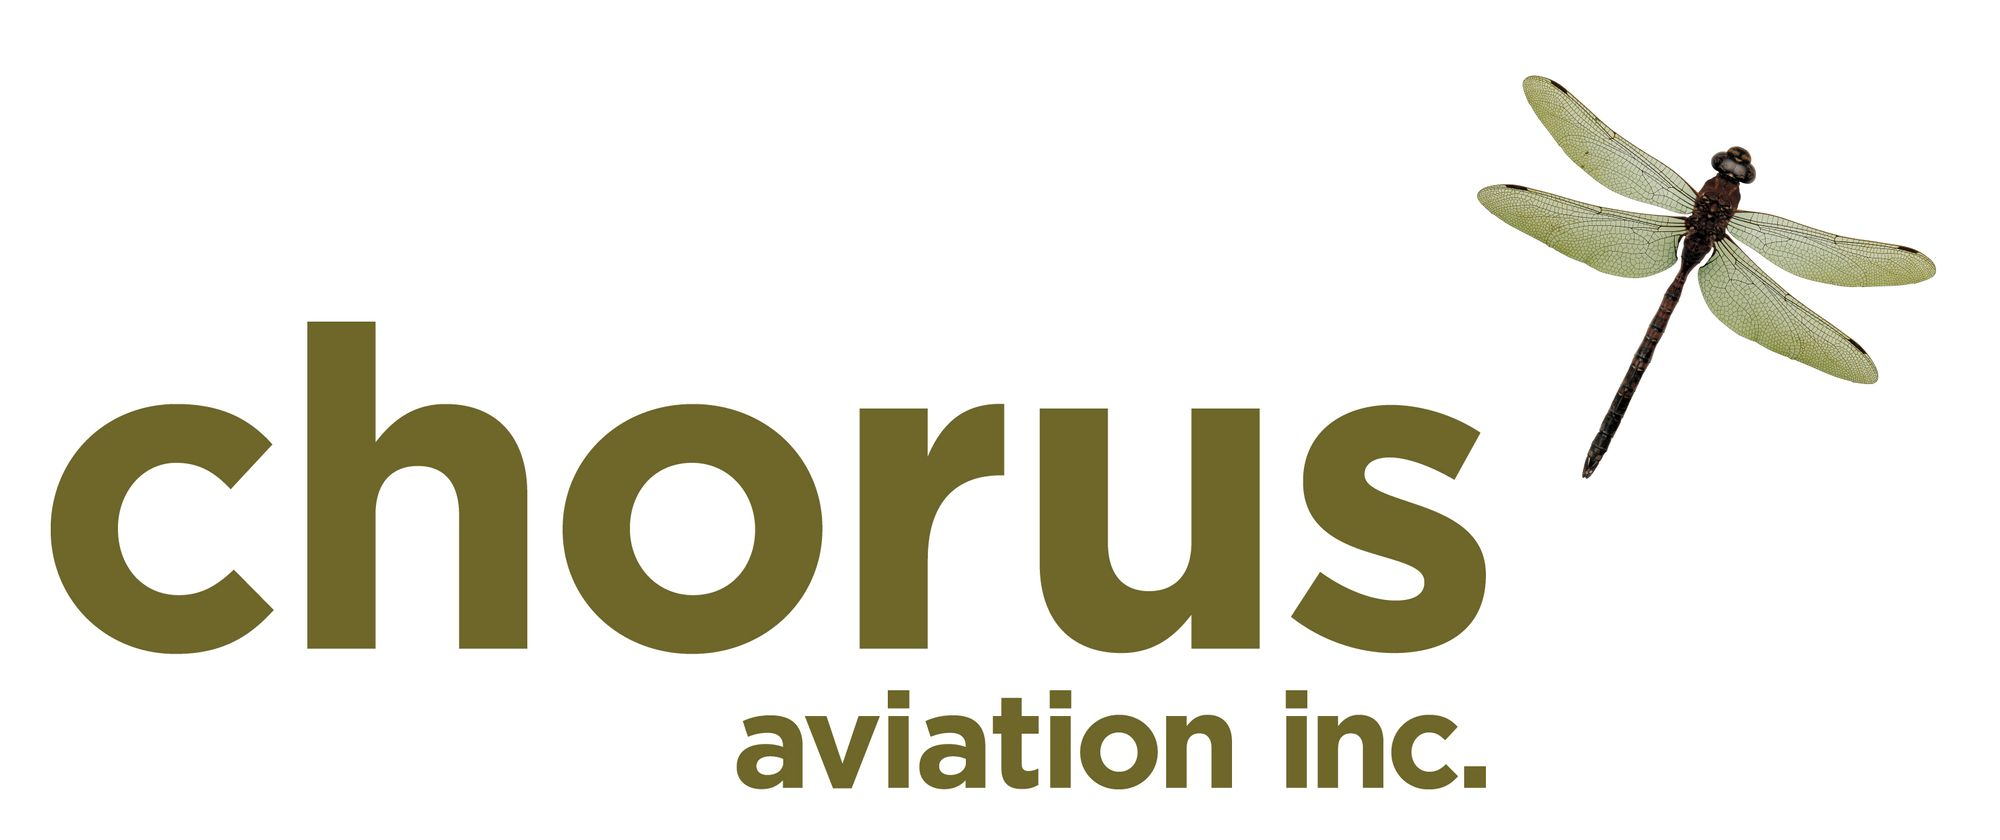 Chorus Aviation announces third quarter 2020 financial results